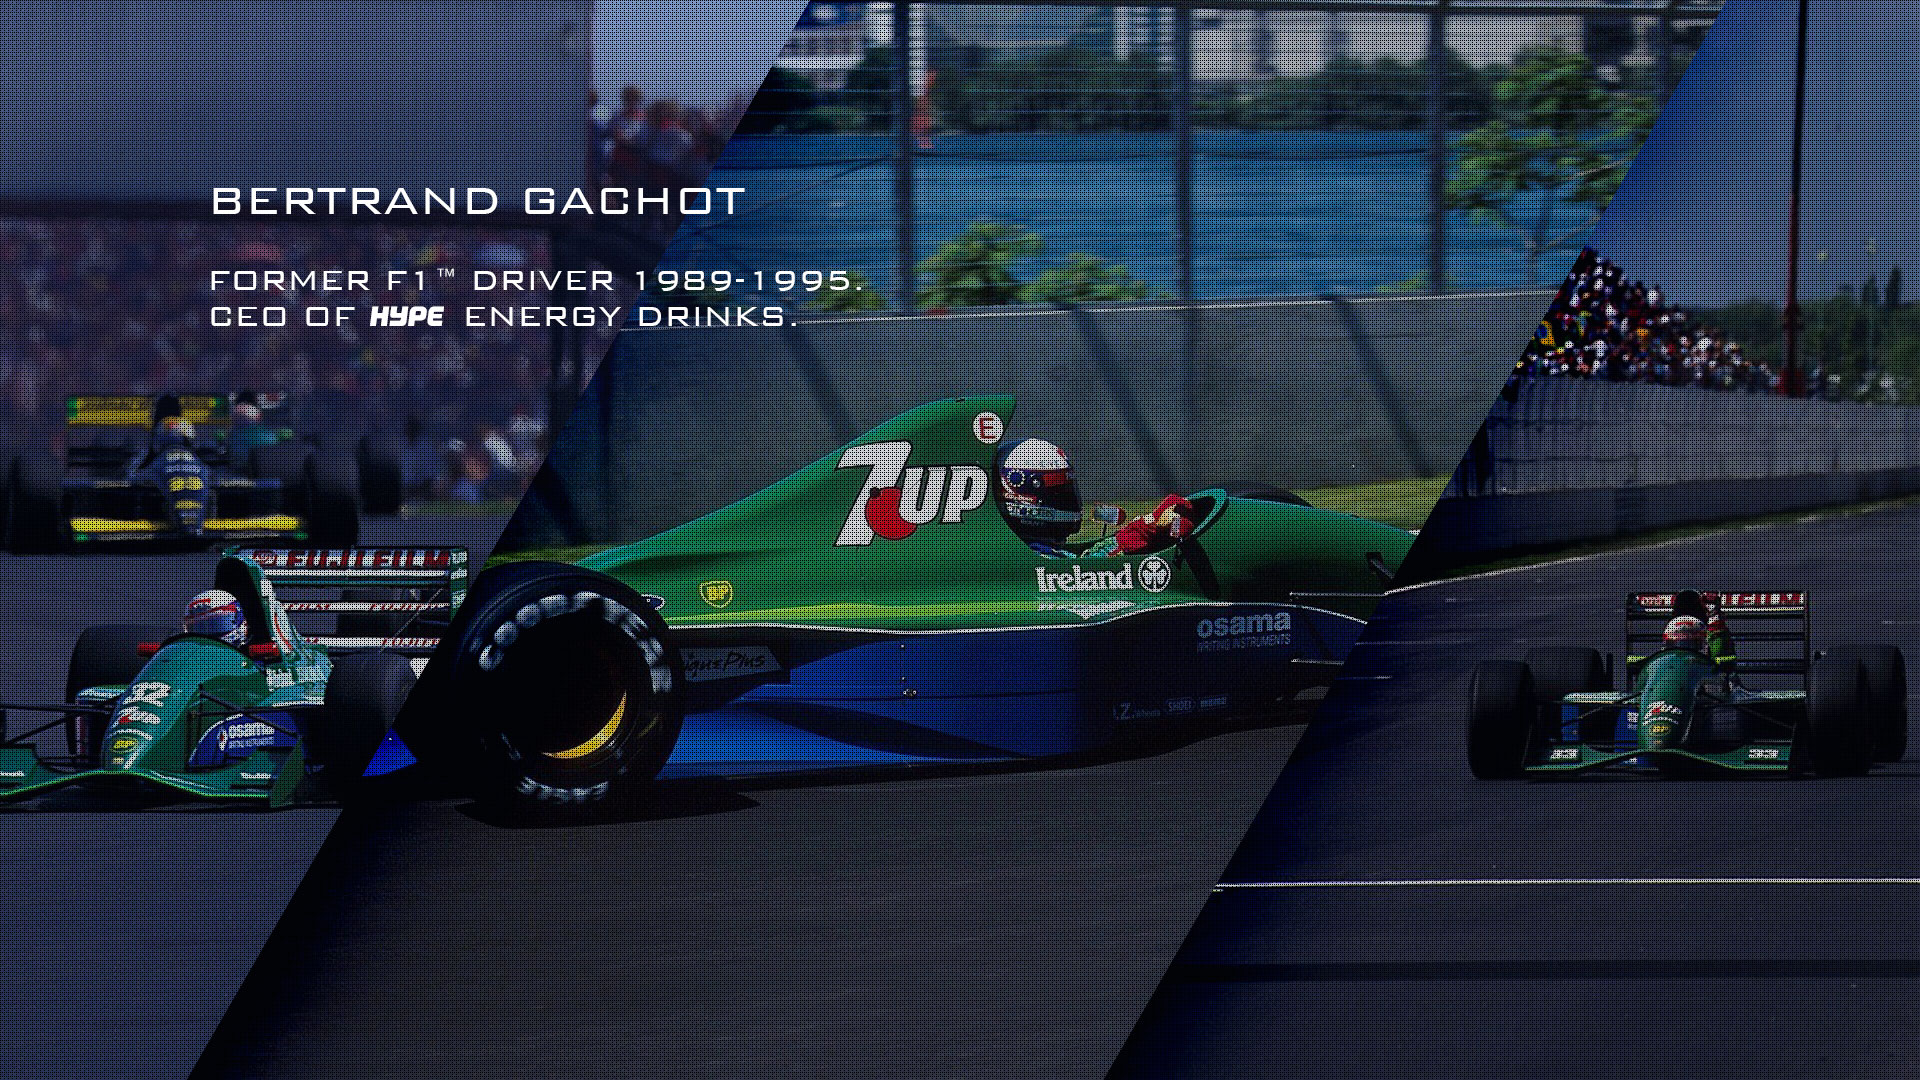 Bertrand Gachot - CEO of Hype Energy Drinks - Former F1 (TM)  driver 1989-1995